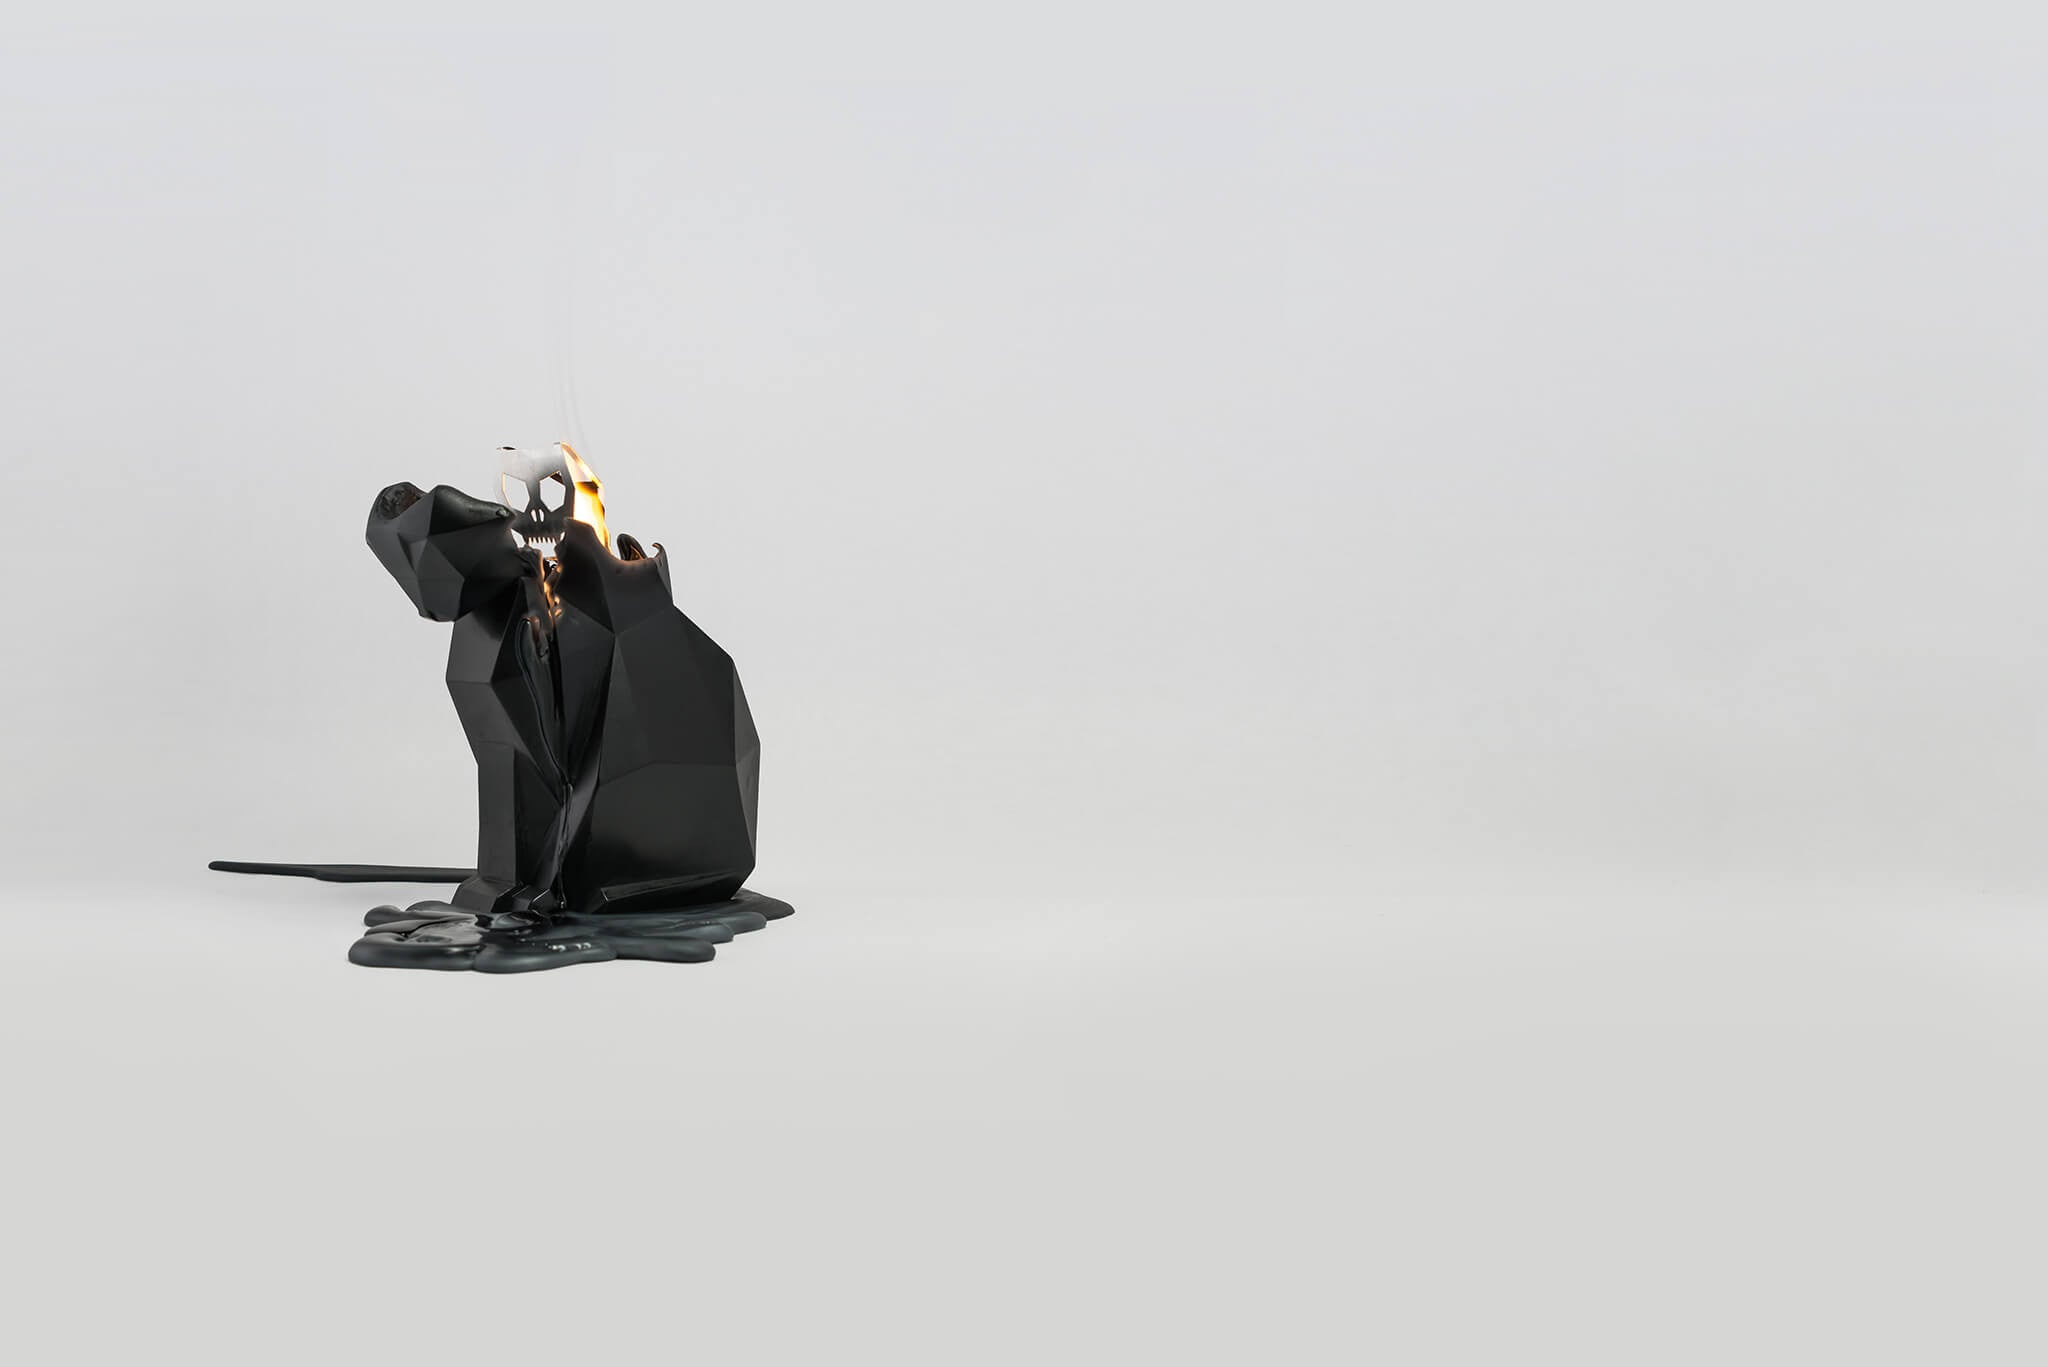 Side view of a melting black kisa the cat shaped pyropet candle.